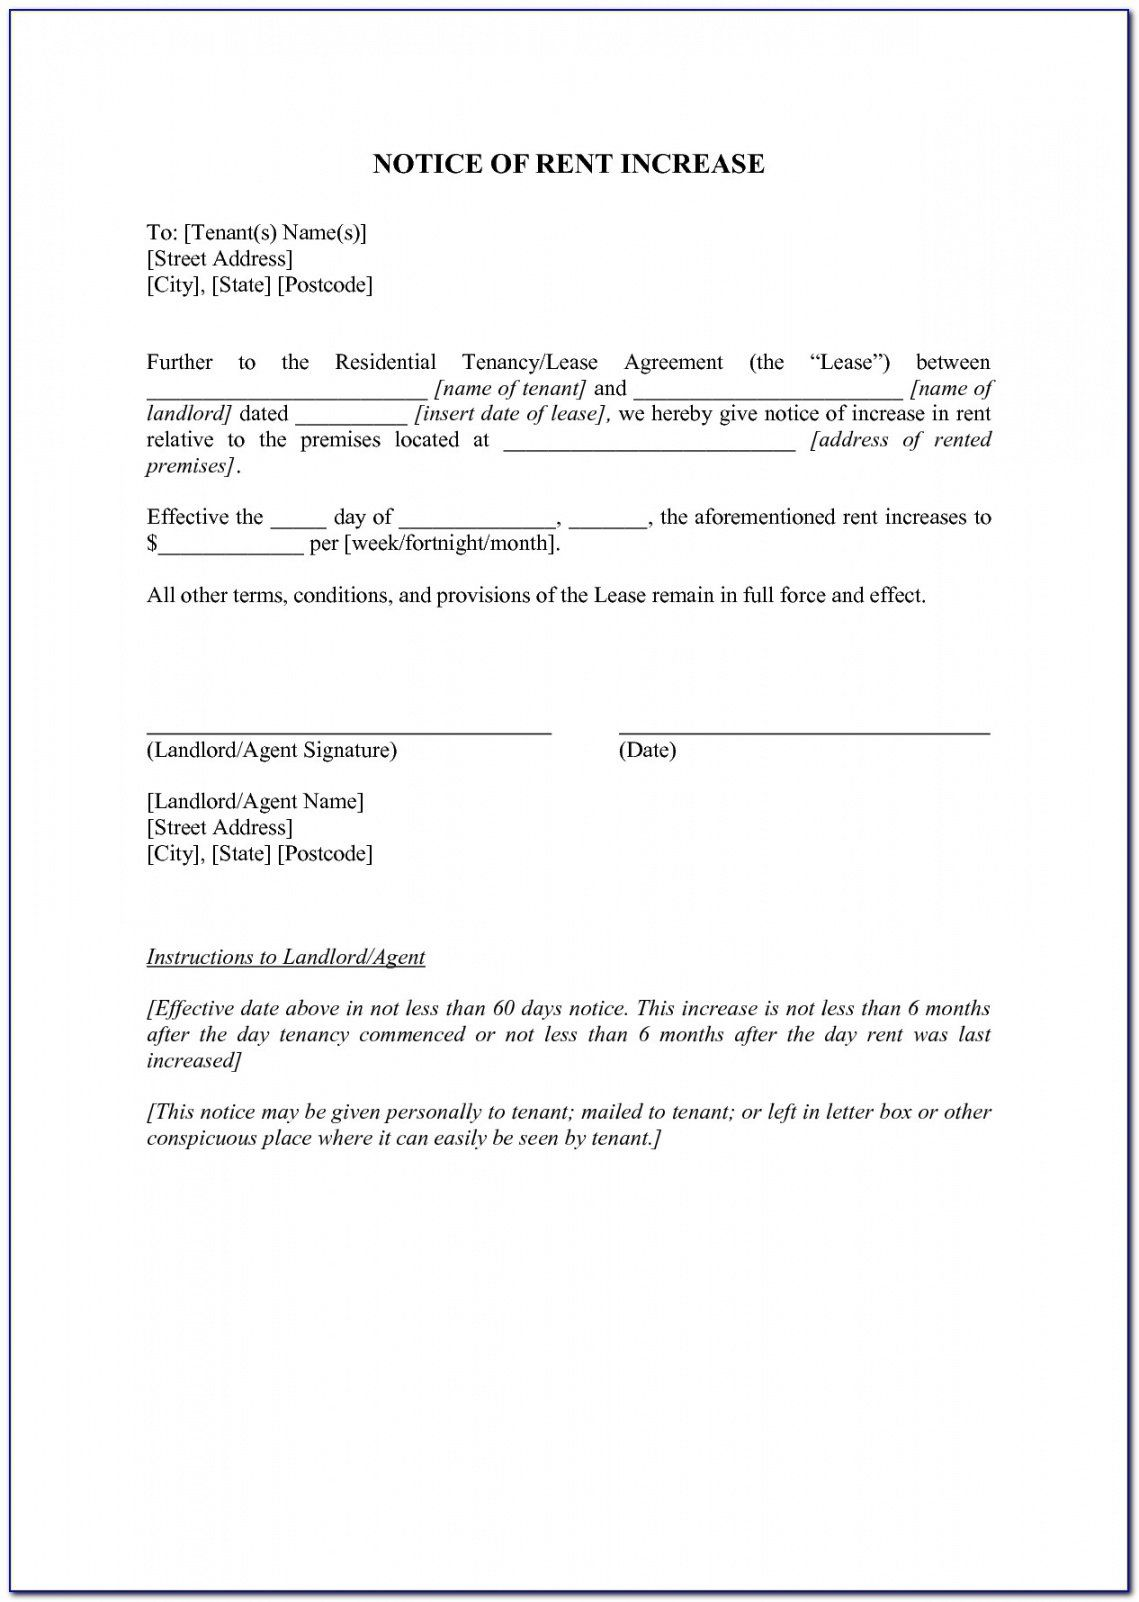 Get Our Free Notice Of Rent Increase Template Letter Template Word Lettering Professional Reference Letter